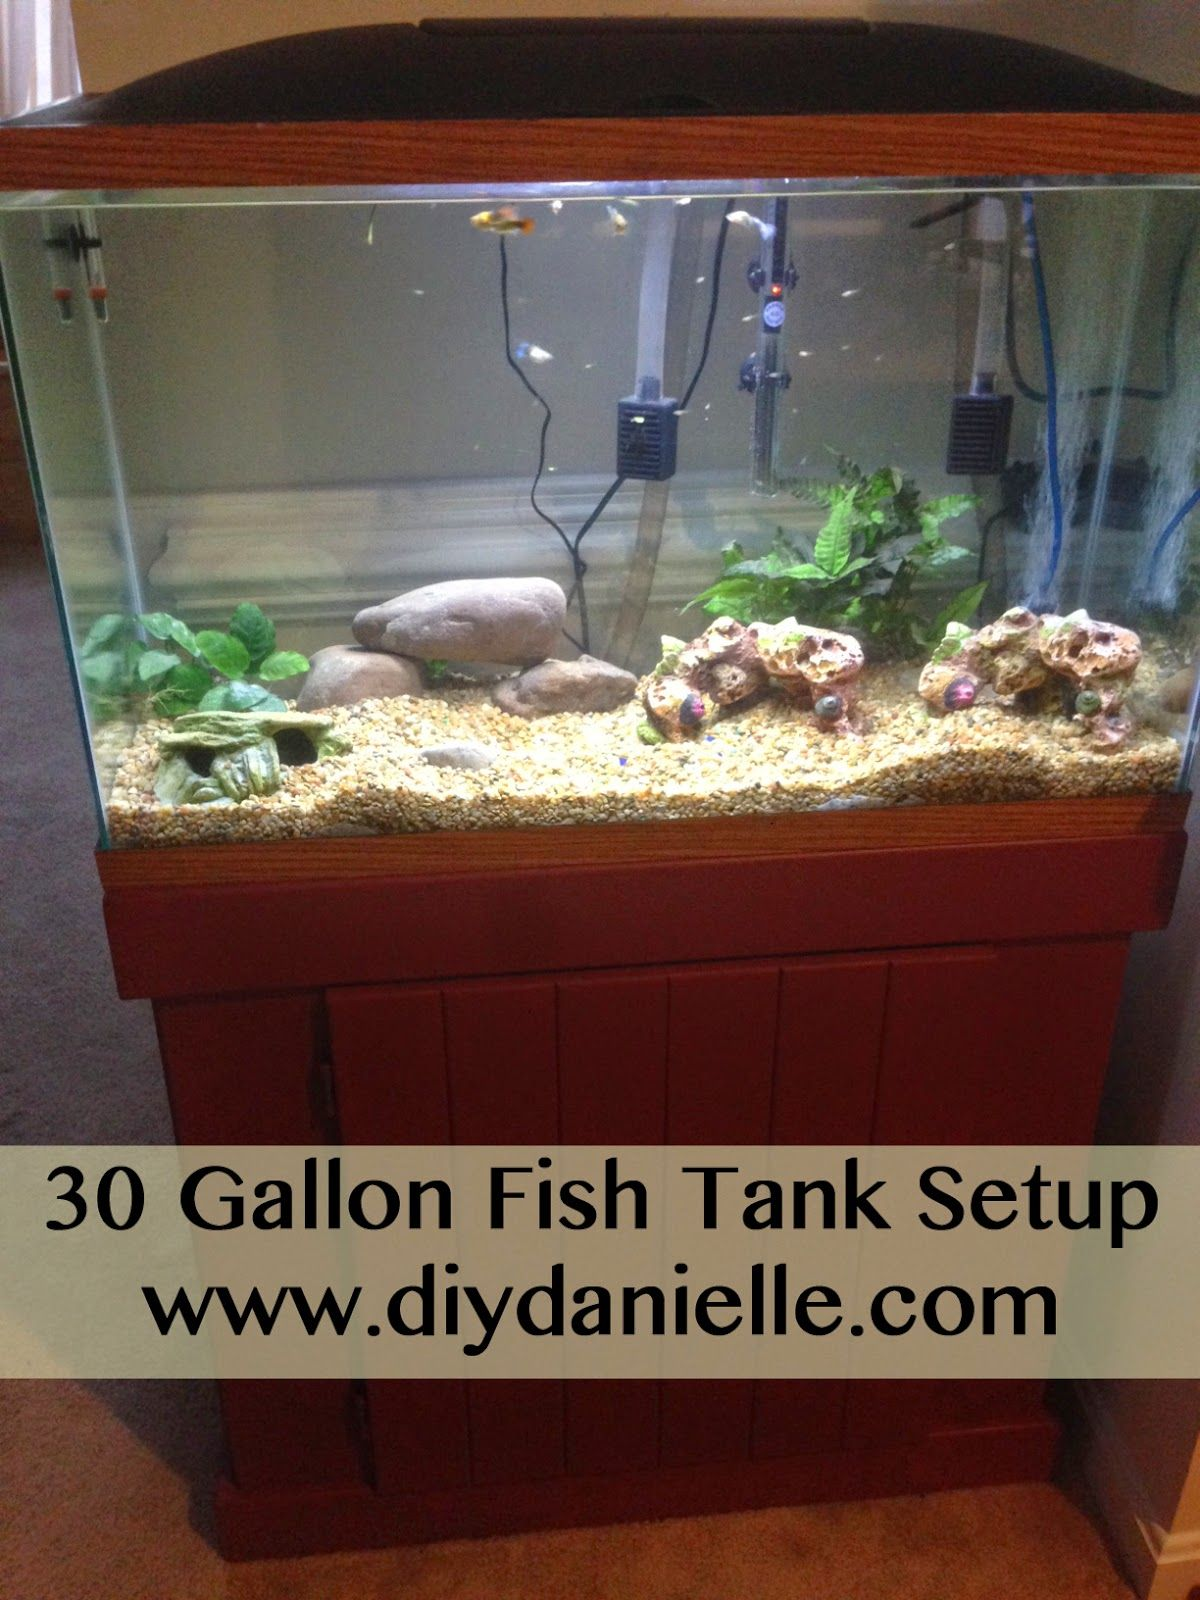 30 Gallon Fish Tank Setup